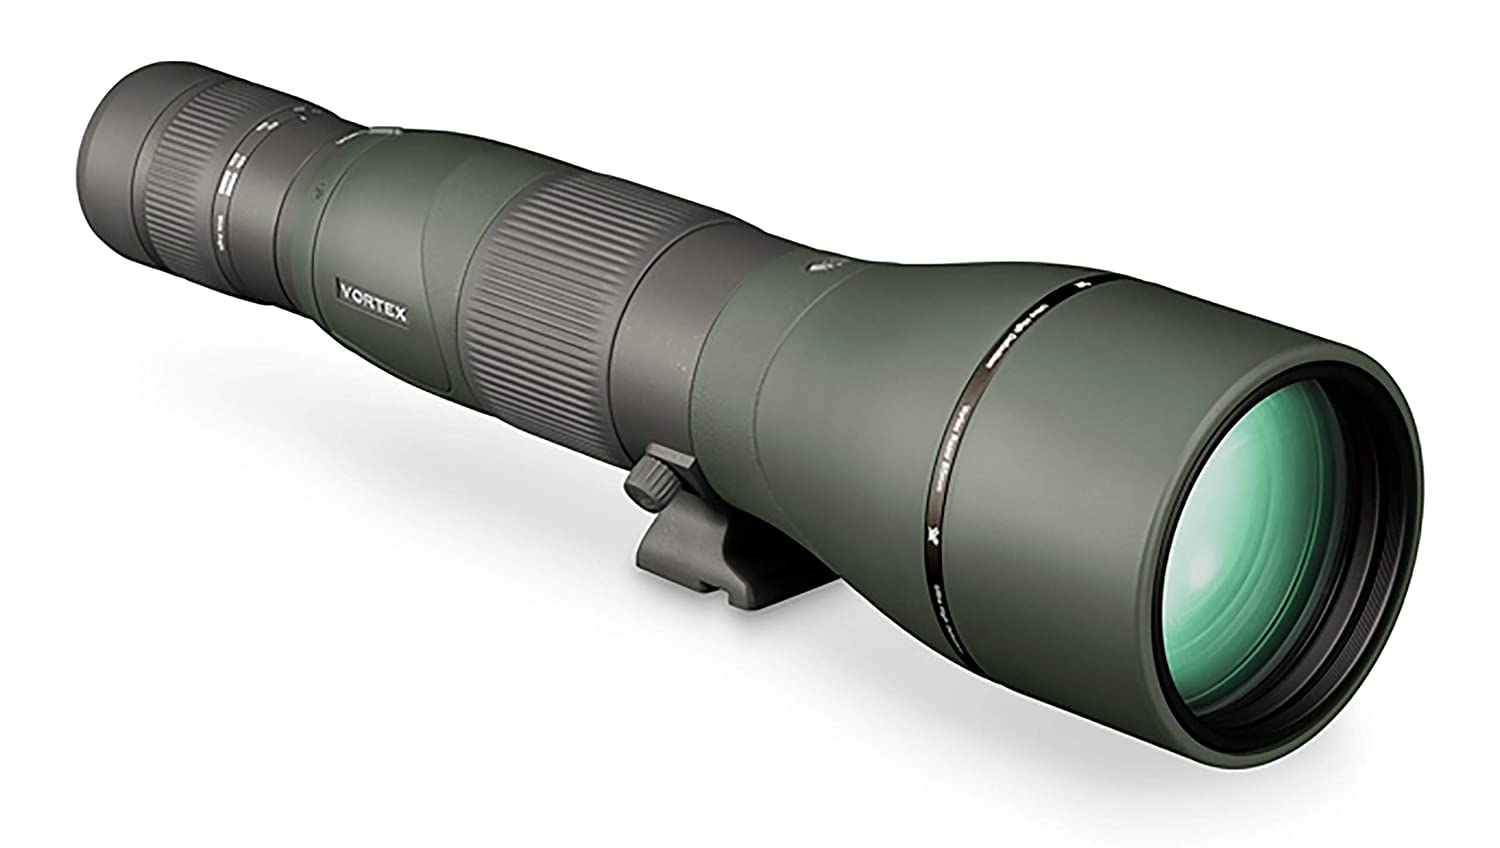 7. Vortex Optics Razor Hd 27-60x85